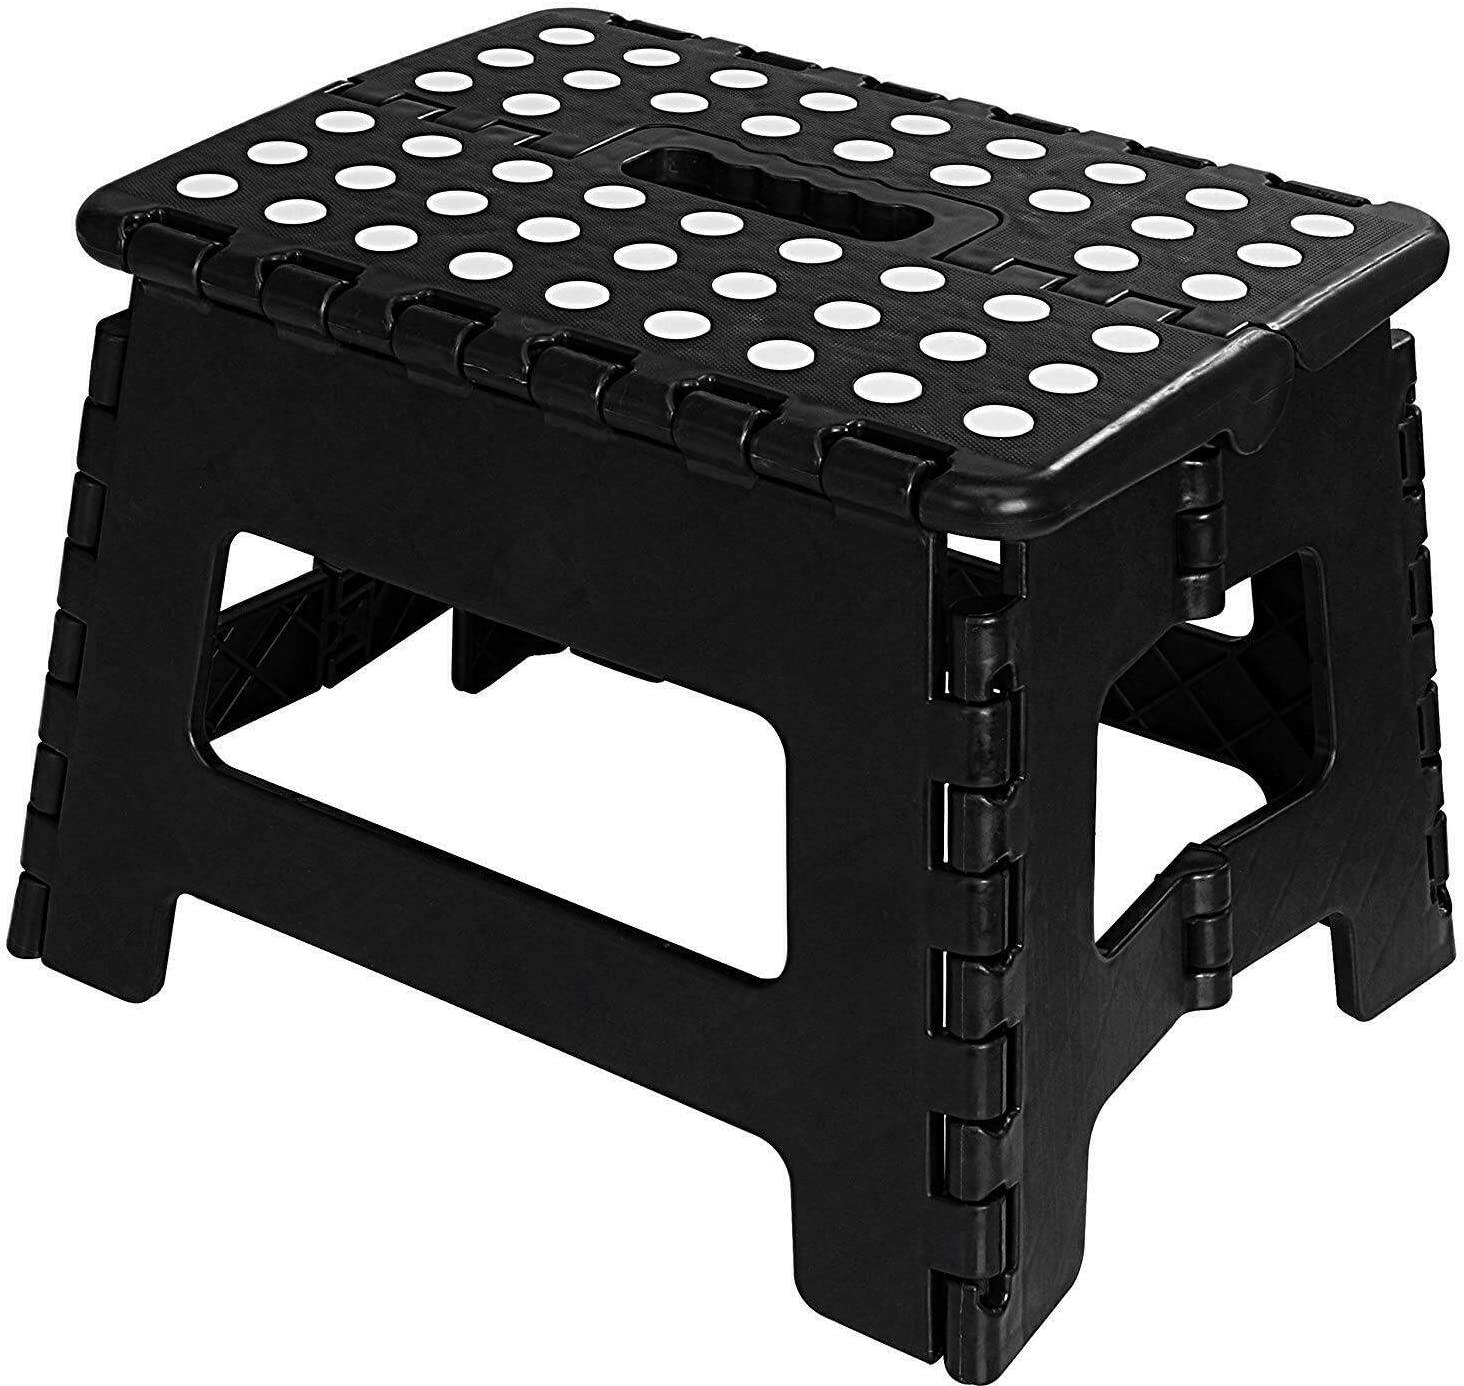 Folding Step Stool for Kids 11 Wide 9 Tall Plastic 300lbs Capacity Step Stool-Foot Stool-Folding Chair-Stool Chair-Folding Step Stool-Improvement-Counter Height Chairs-Folding Stool